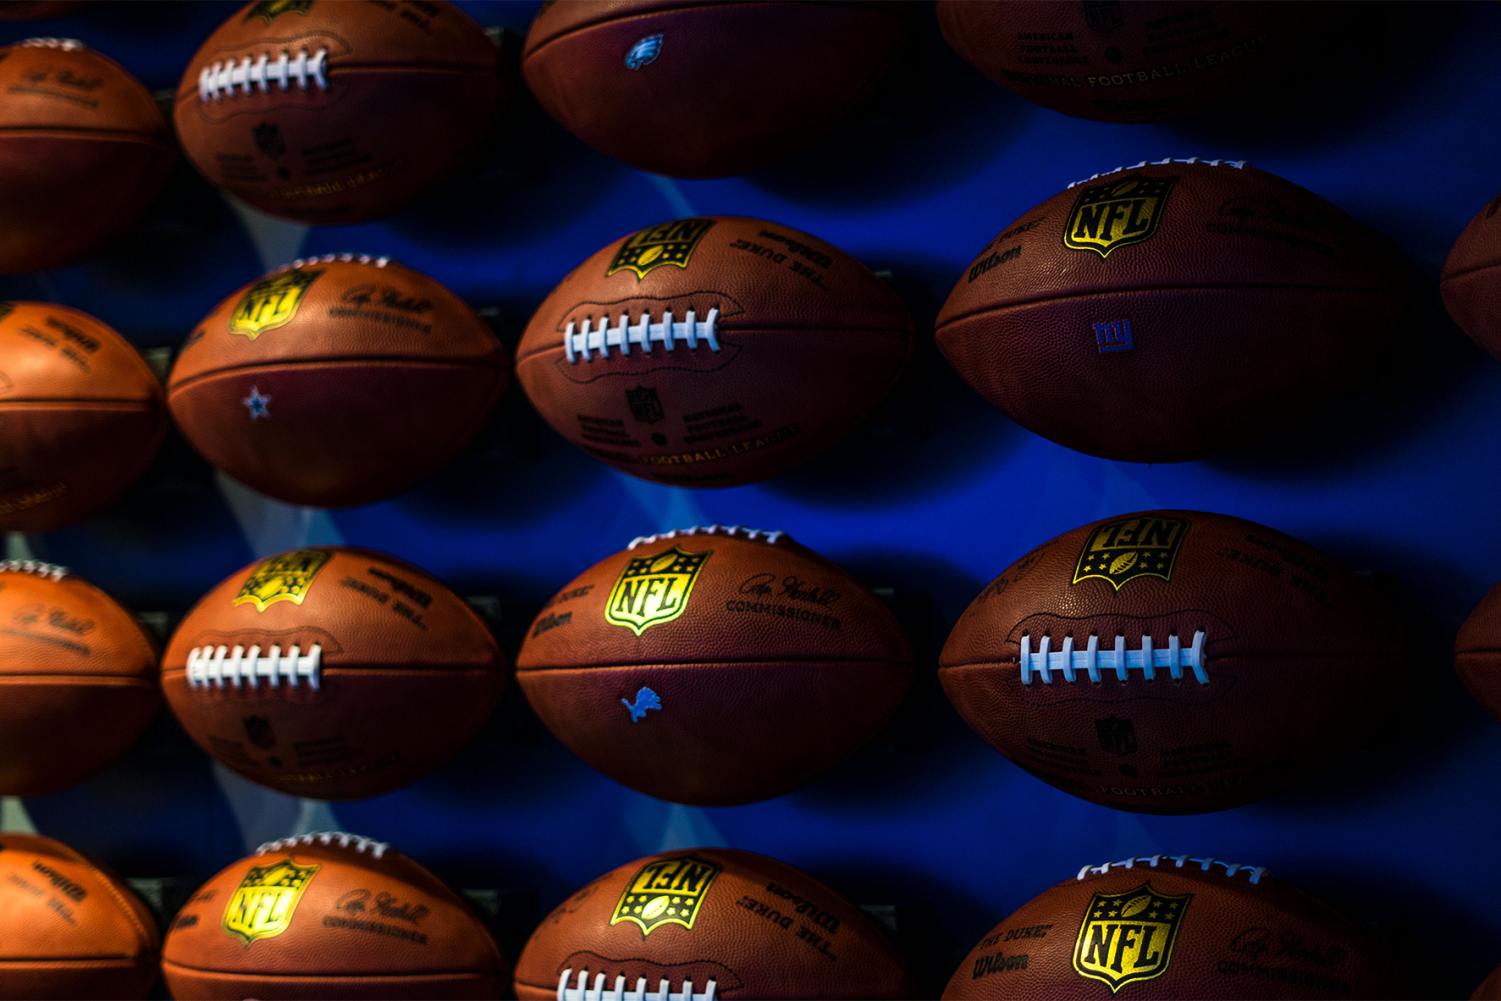 The new league year begins on March 13, as players will start joining new teams.